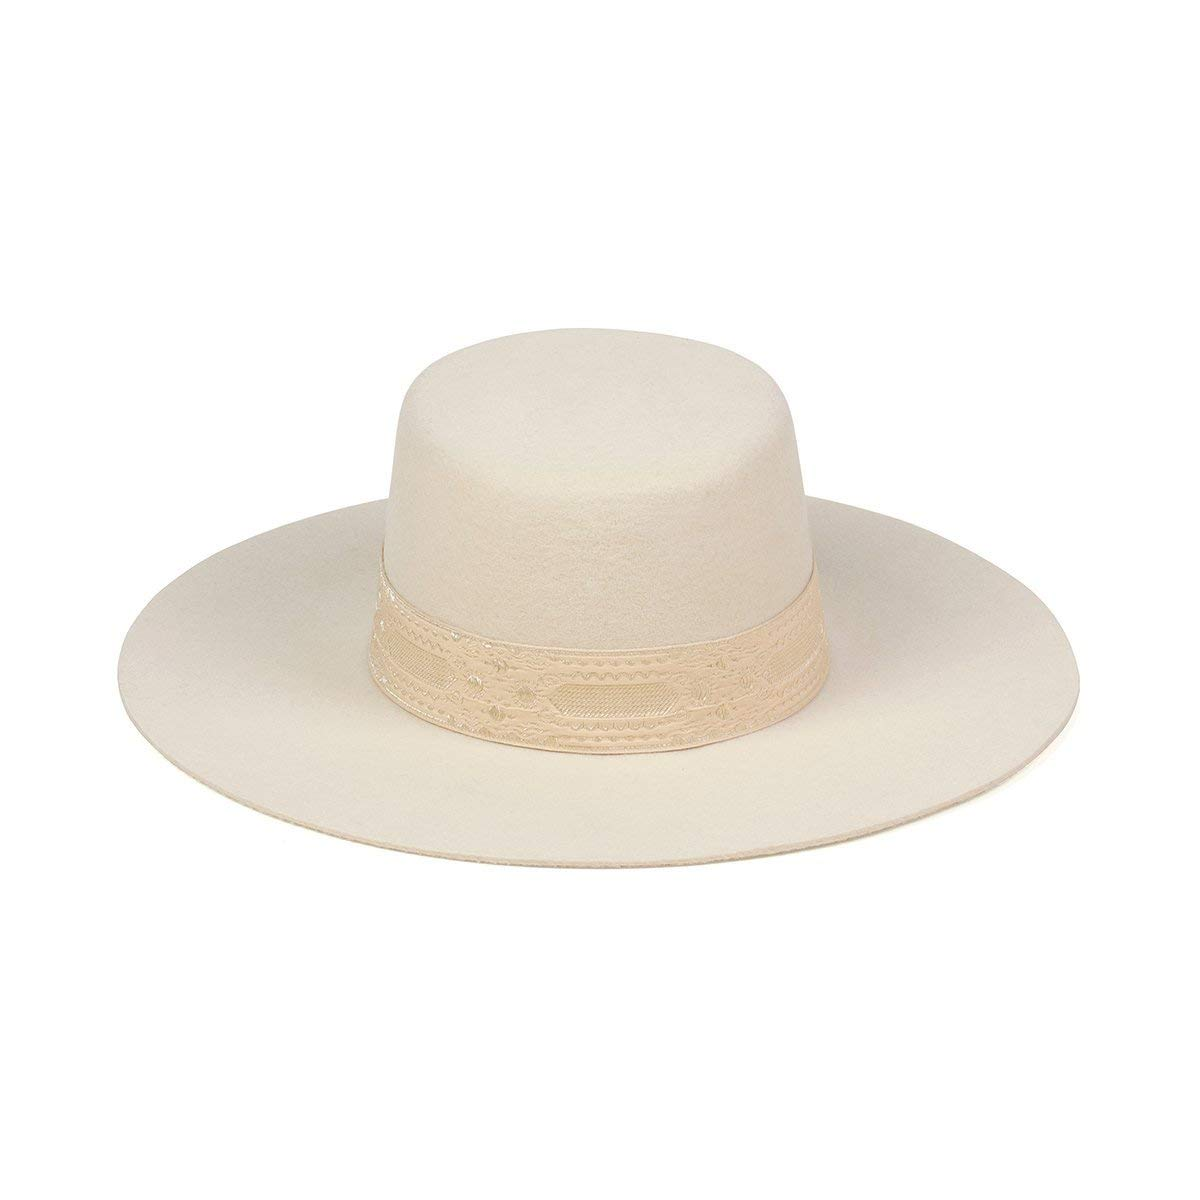 Lack of Color Women's The Sierra Gold Wide-Brimmed Wool Boater Hat (Cream, Small (55cm)) by Lack of Color